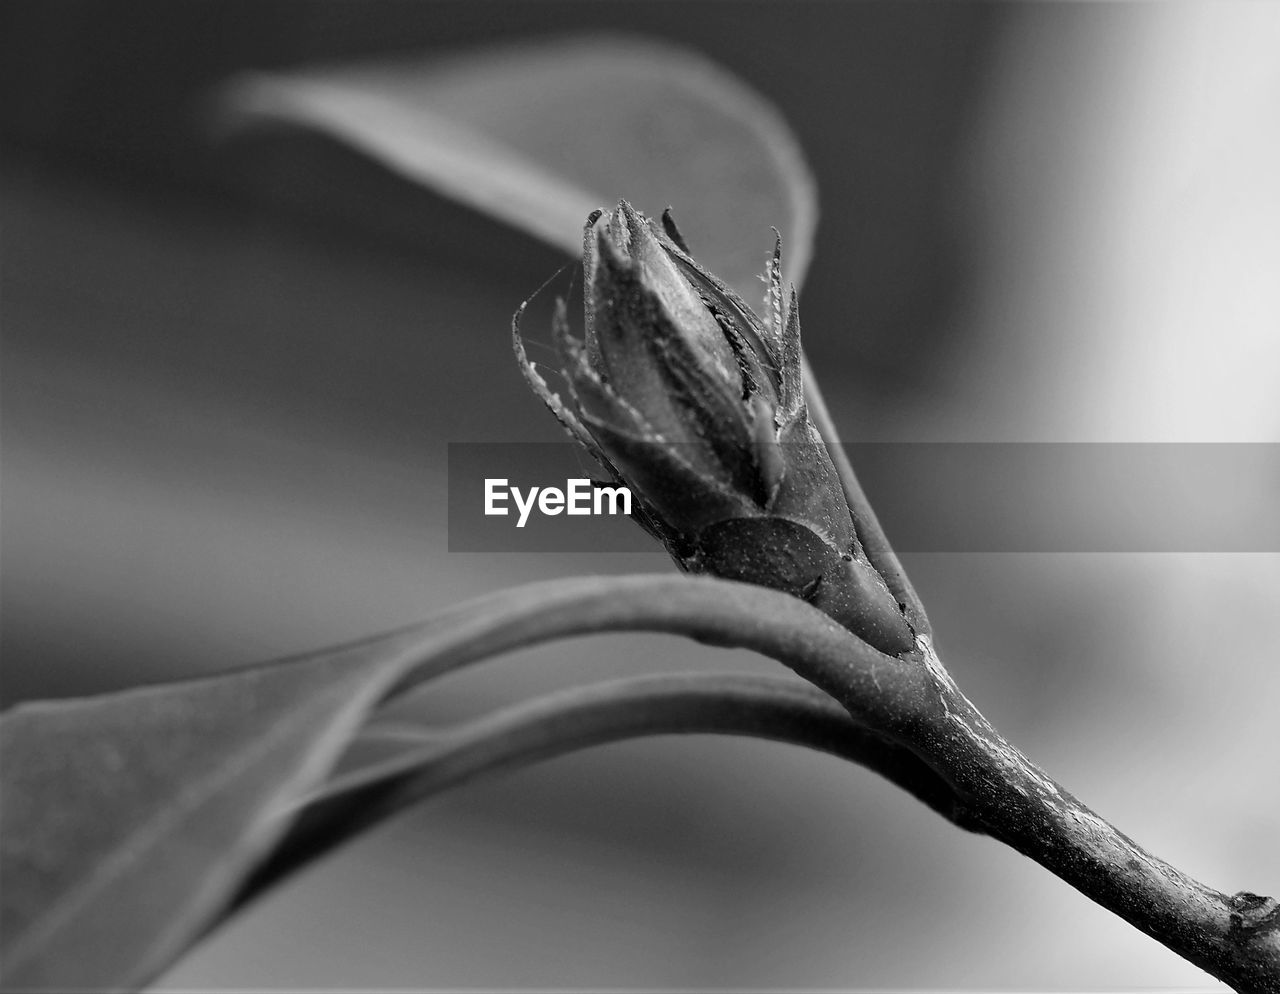 focus on foreground, close-up, plant, plant part, day, nature, no people, leaf, one animal, outdoors, animals in the wild, animal, animal wildlife, animal themes, selective focus, branch, beauty in nature, plant stem, growth, vertebrate, dried